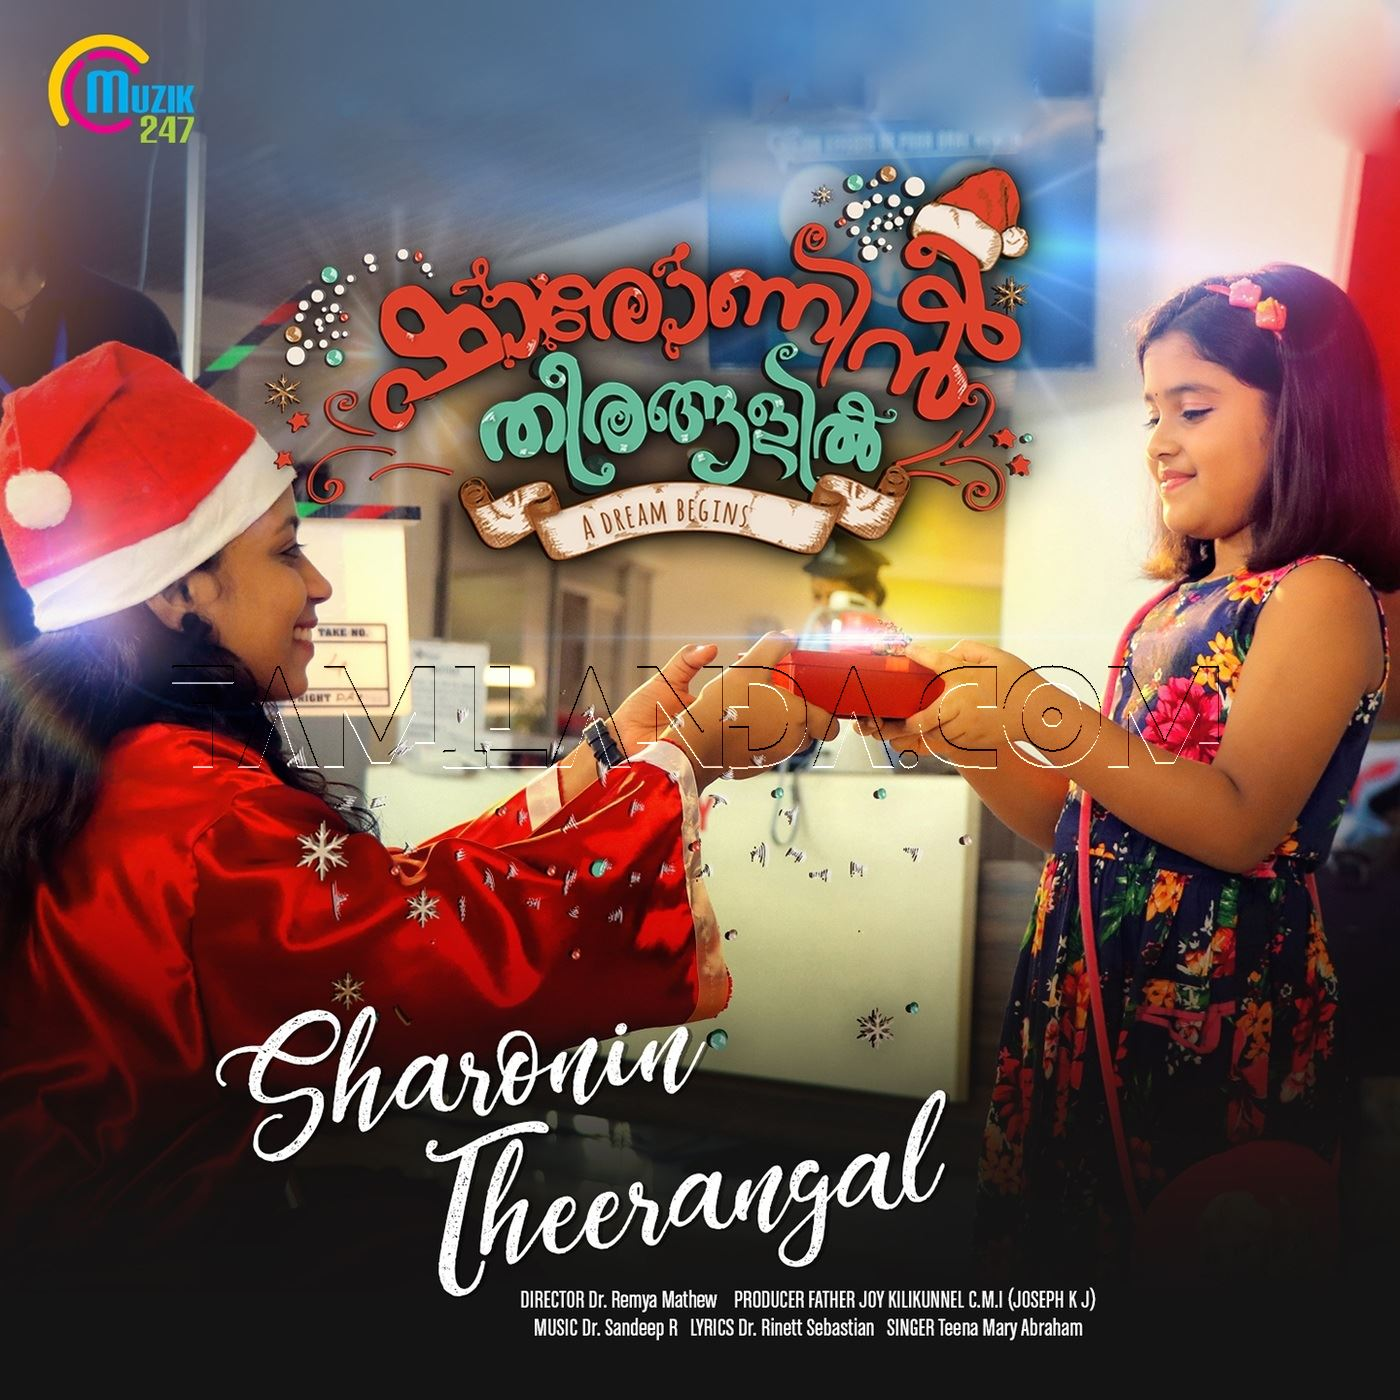 Sharonin Theerangal (From Sharonin Theerangal) – Single FLAC Song (2018)